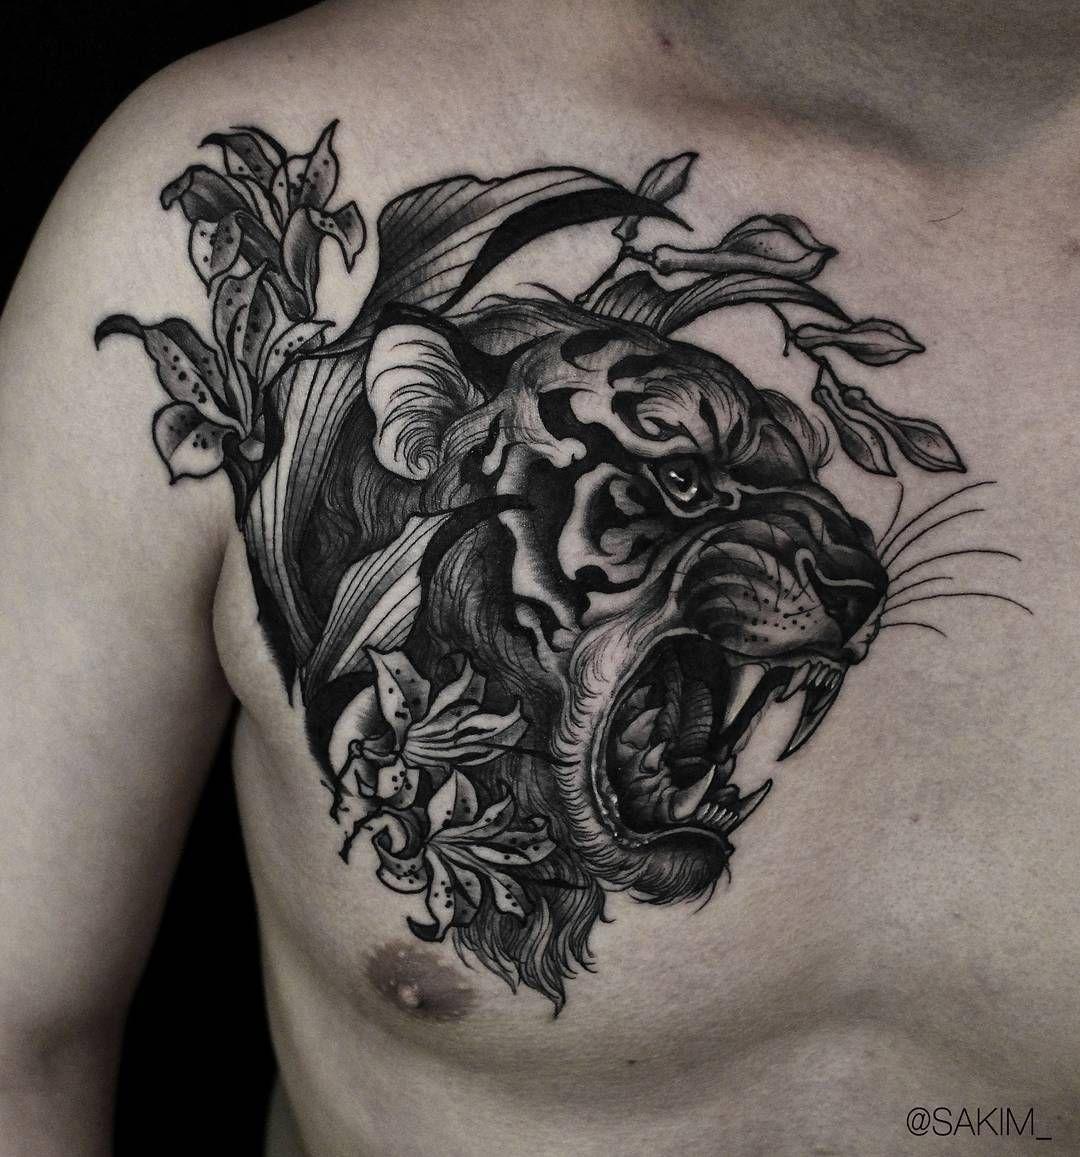 Tiger Tattoos Meaning And Design Ideas Tattoos Tiger Head Tattoo Chest Tattoo Black And Grey